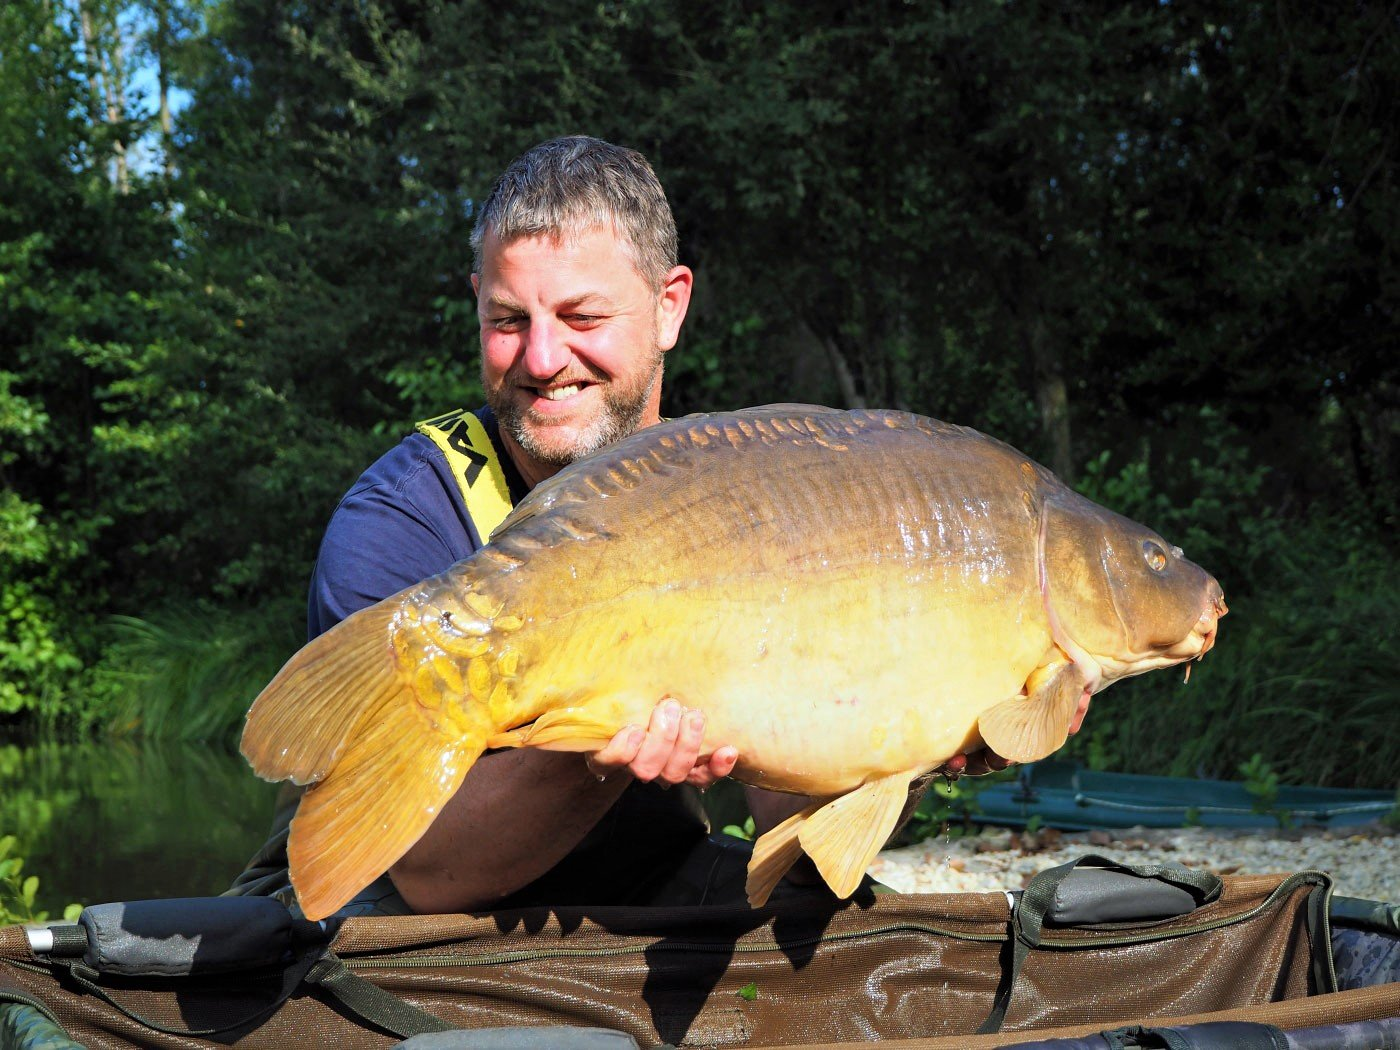 Jon with the Dark Knight at 33lbs 8oz